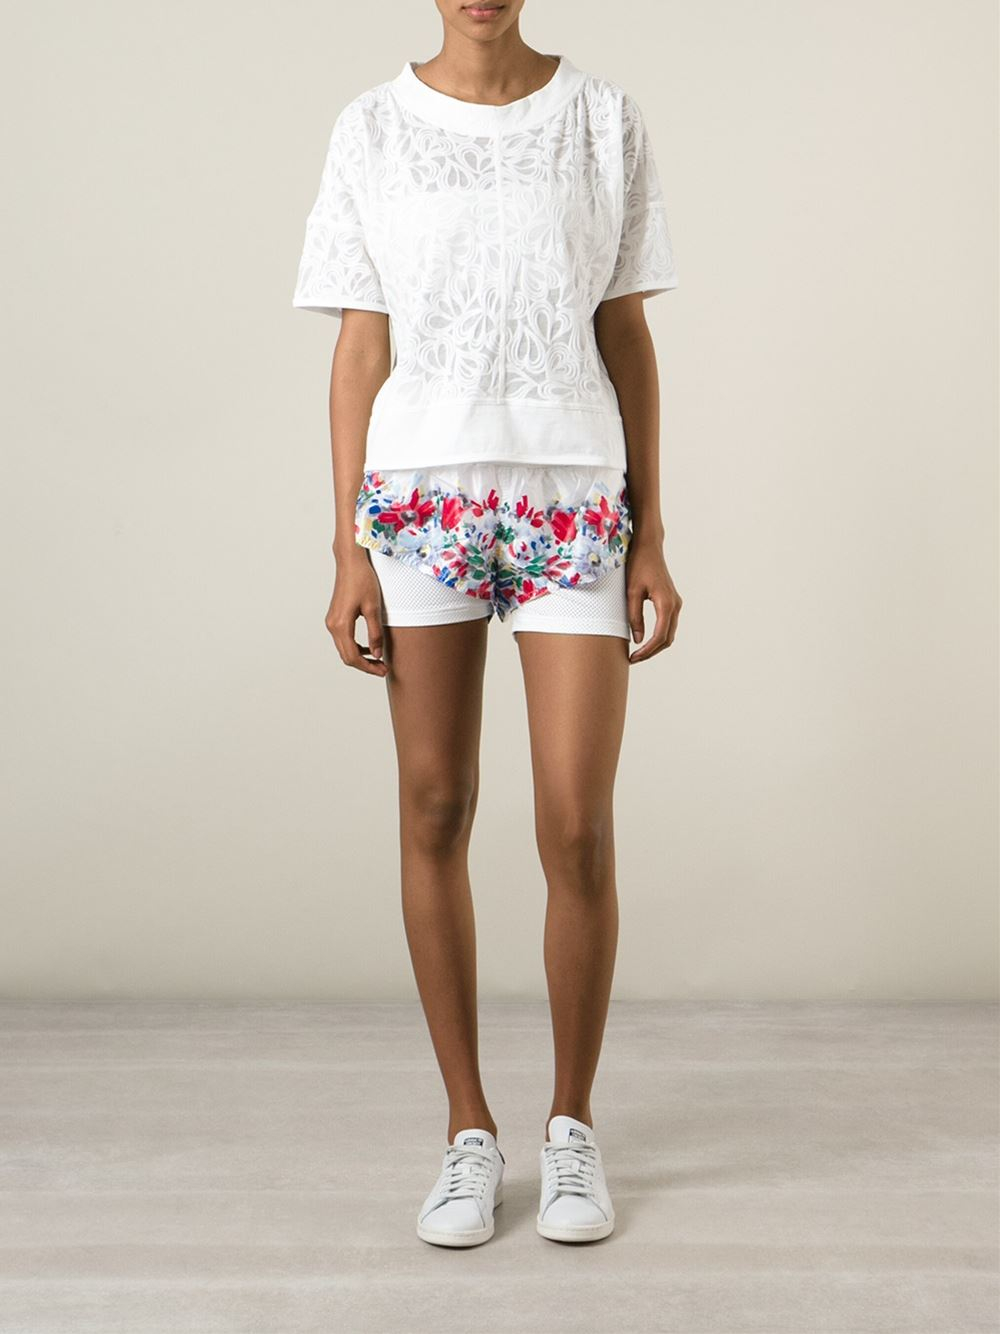 adidas by stella mccartney floral run shorts in floral. Black Bedroom Furniture Sets. Home Design Ideas